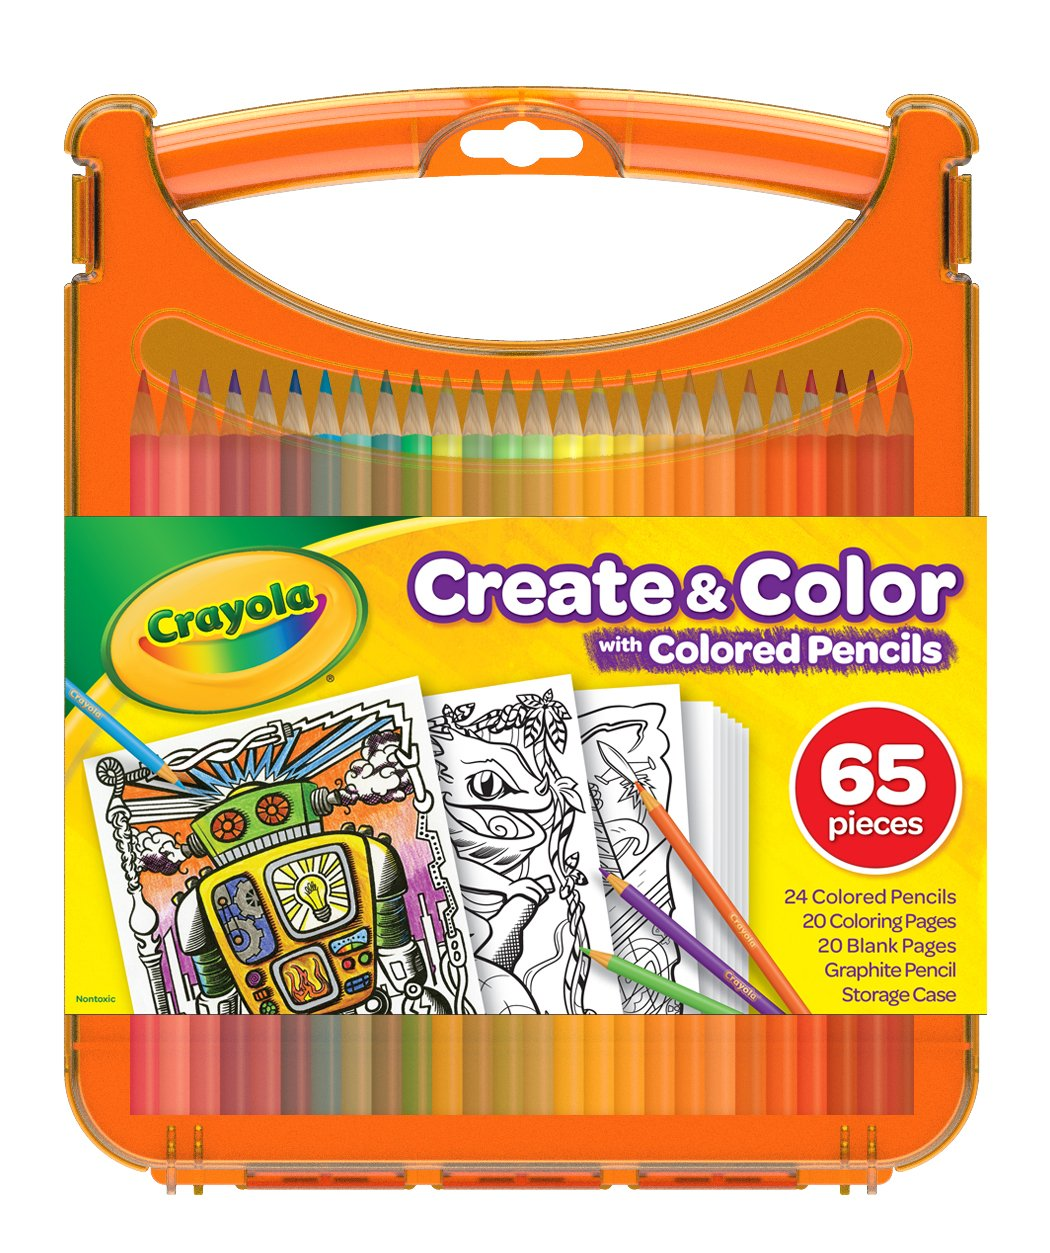 Crayola Create & Color with Colored Pencils, Travel Art Set, Great for Kids, Ages 4, 5, 6, 7, 8 by Crayola